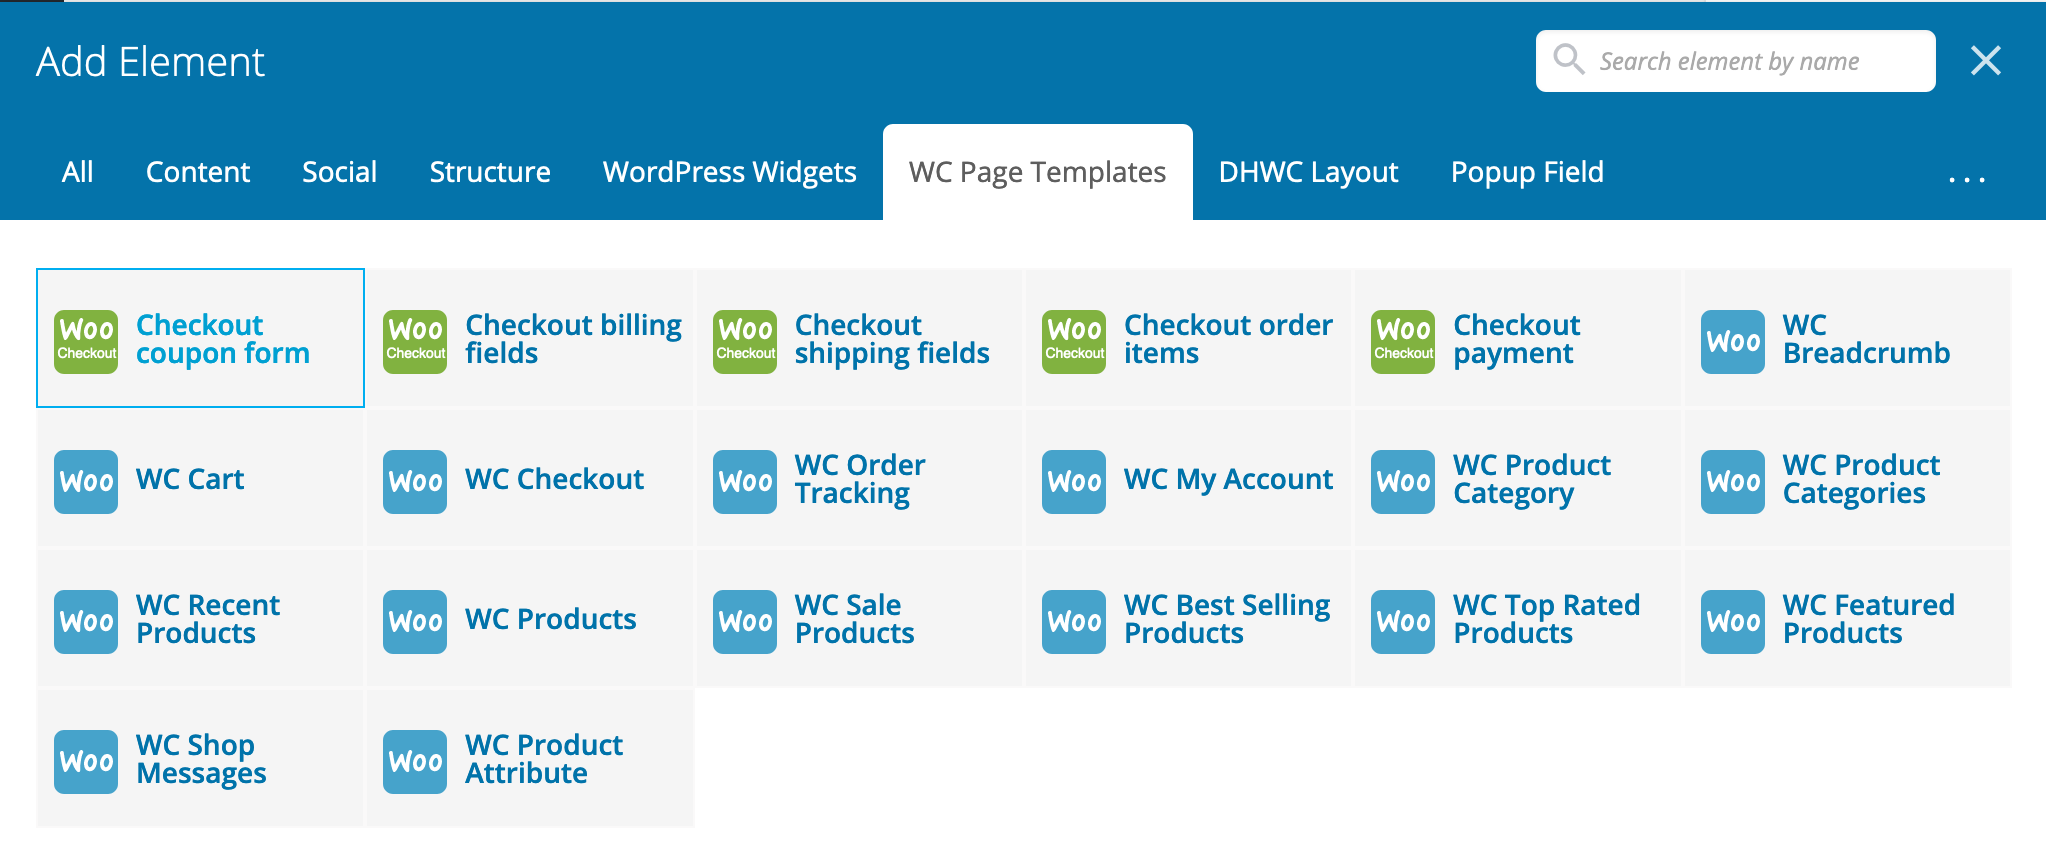 DHWCPage - WooCommerce Page Template Builder - 5